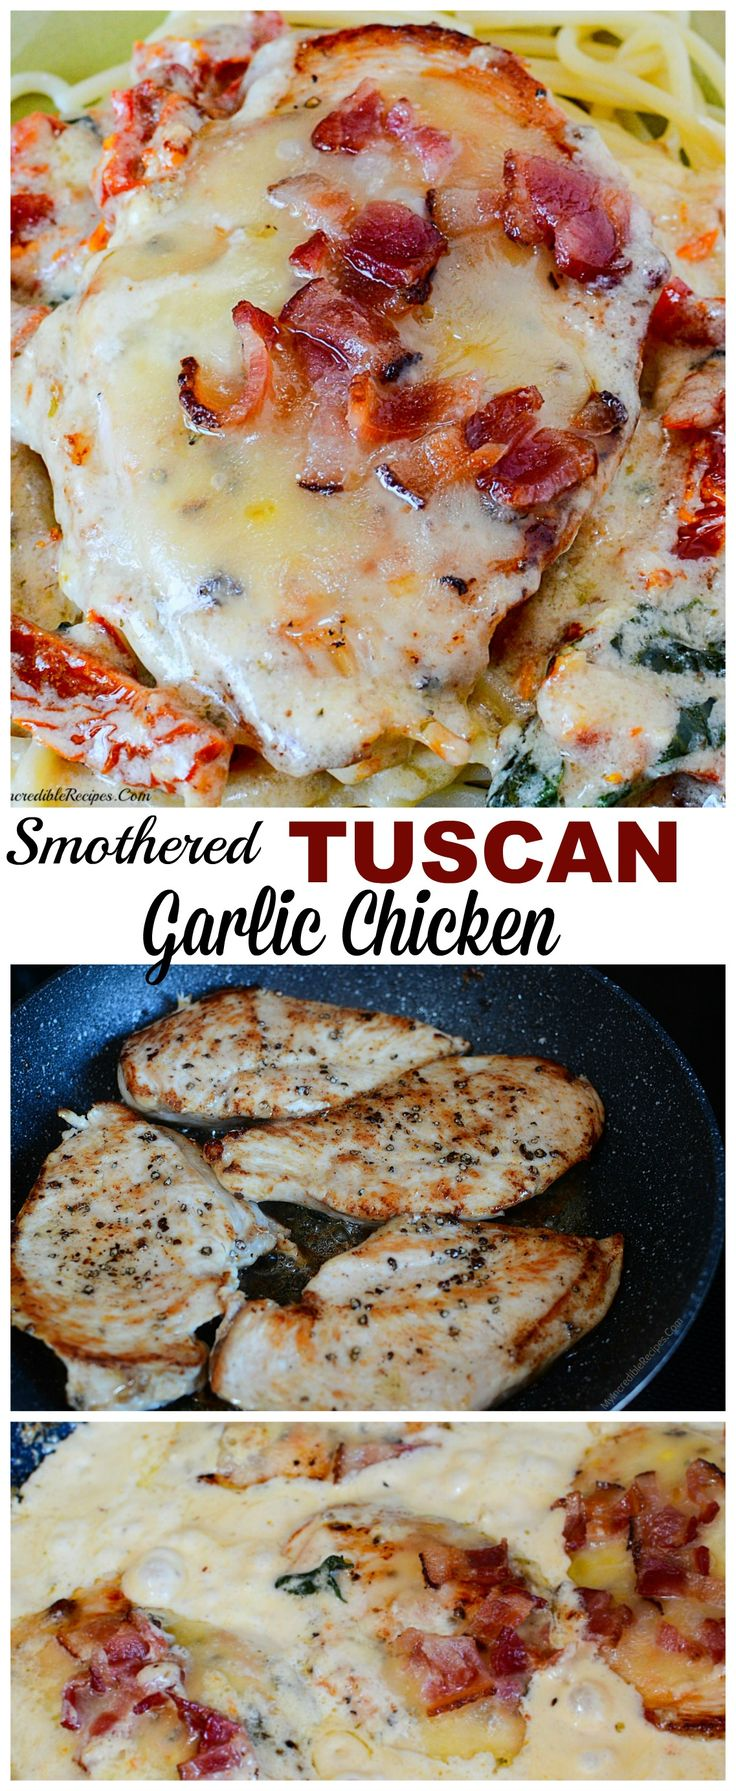 Smothered Tuscan Garlic Chicken! image on RecipesHeaven.com